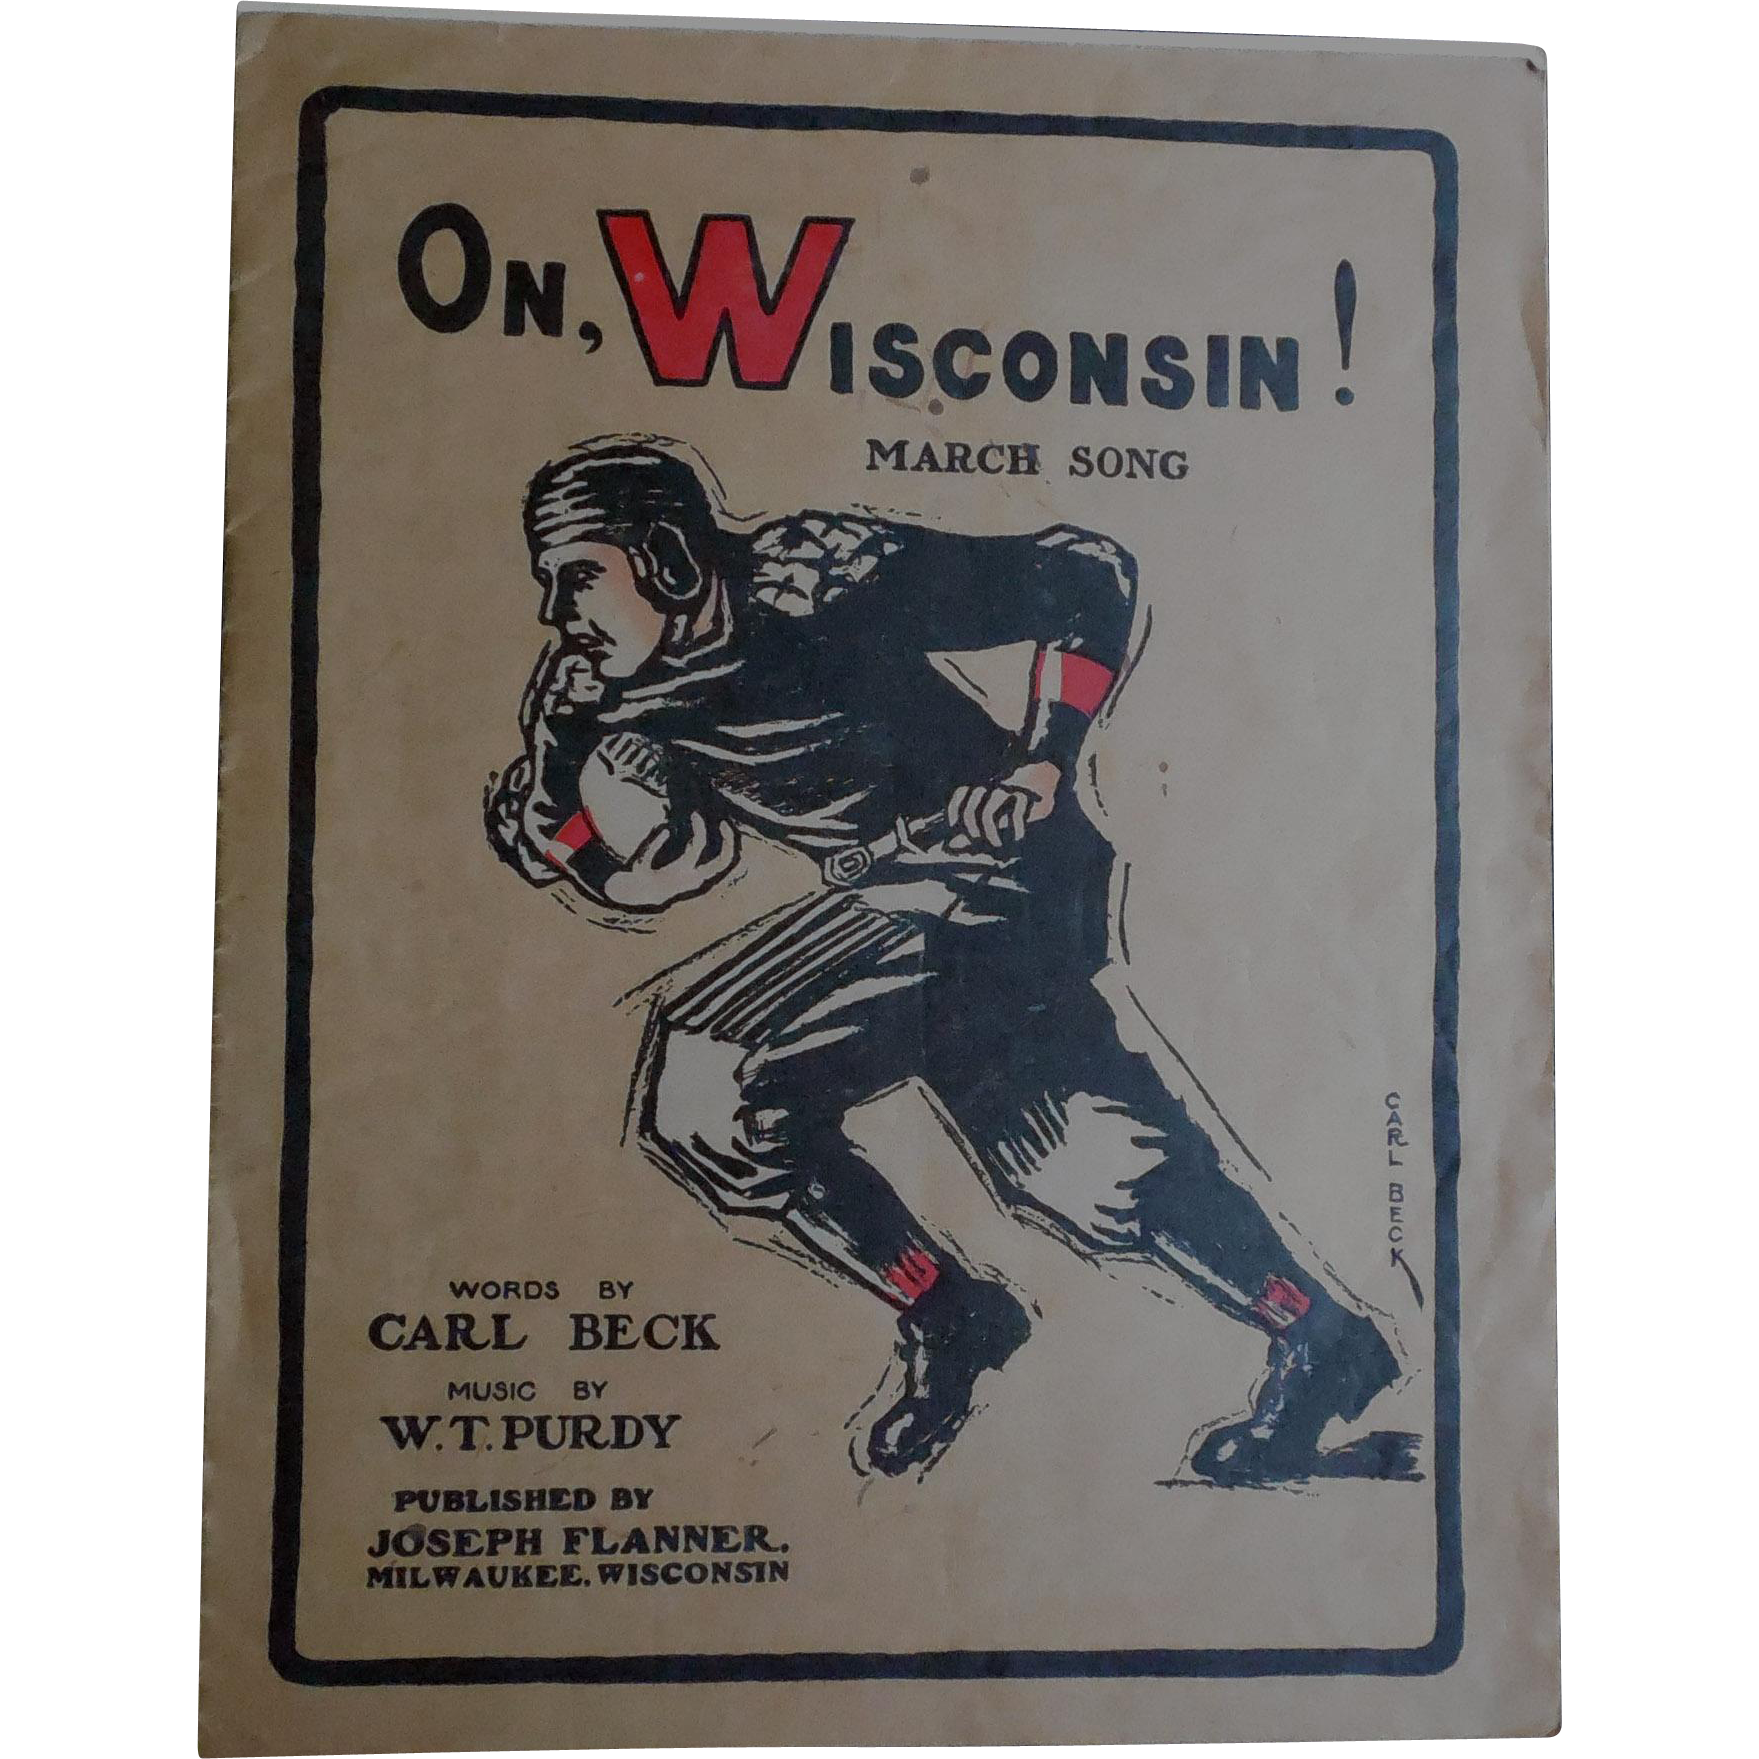 Rare Football Fight Song Sheet Music Dated 1910 'On Wisconsin' - Carl Beck W.T. Purdy Joseph Flanner